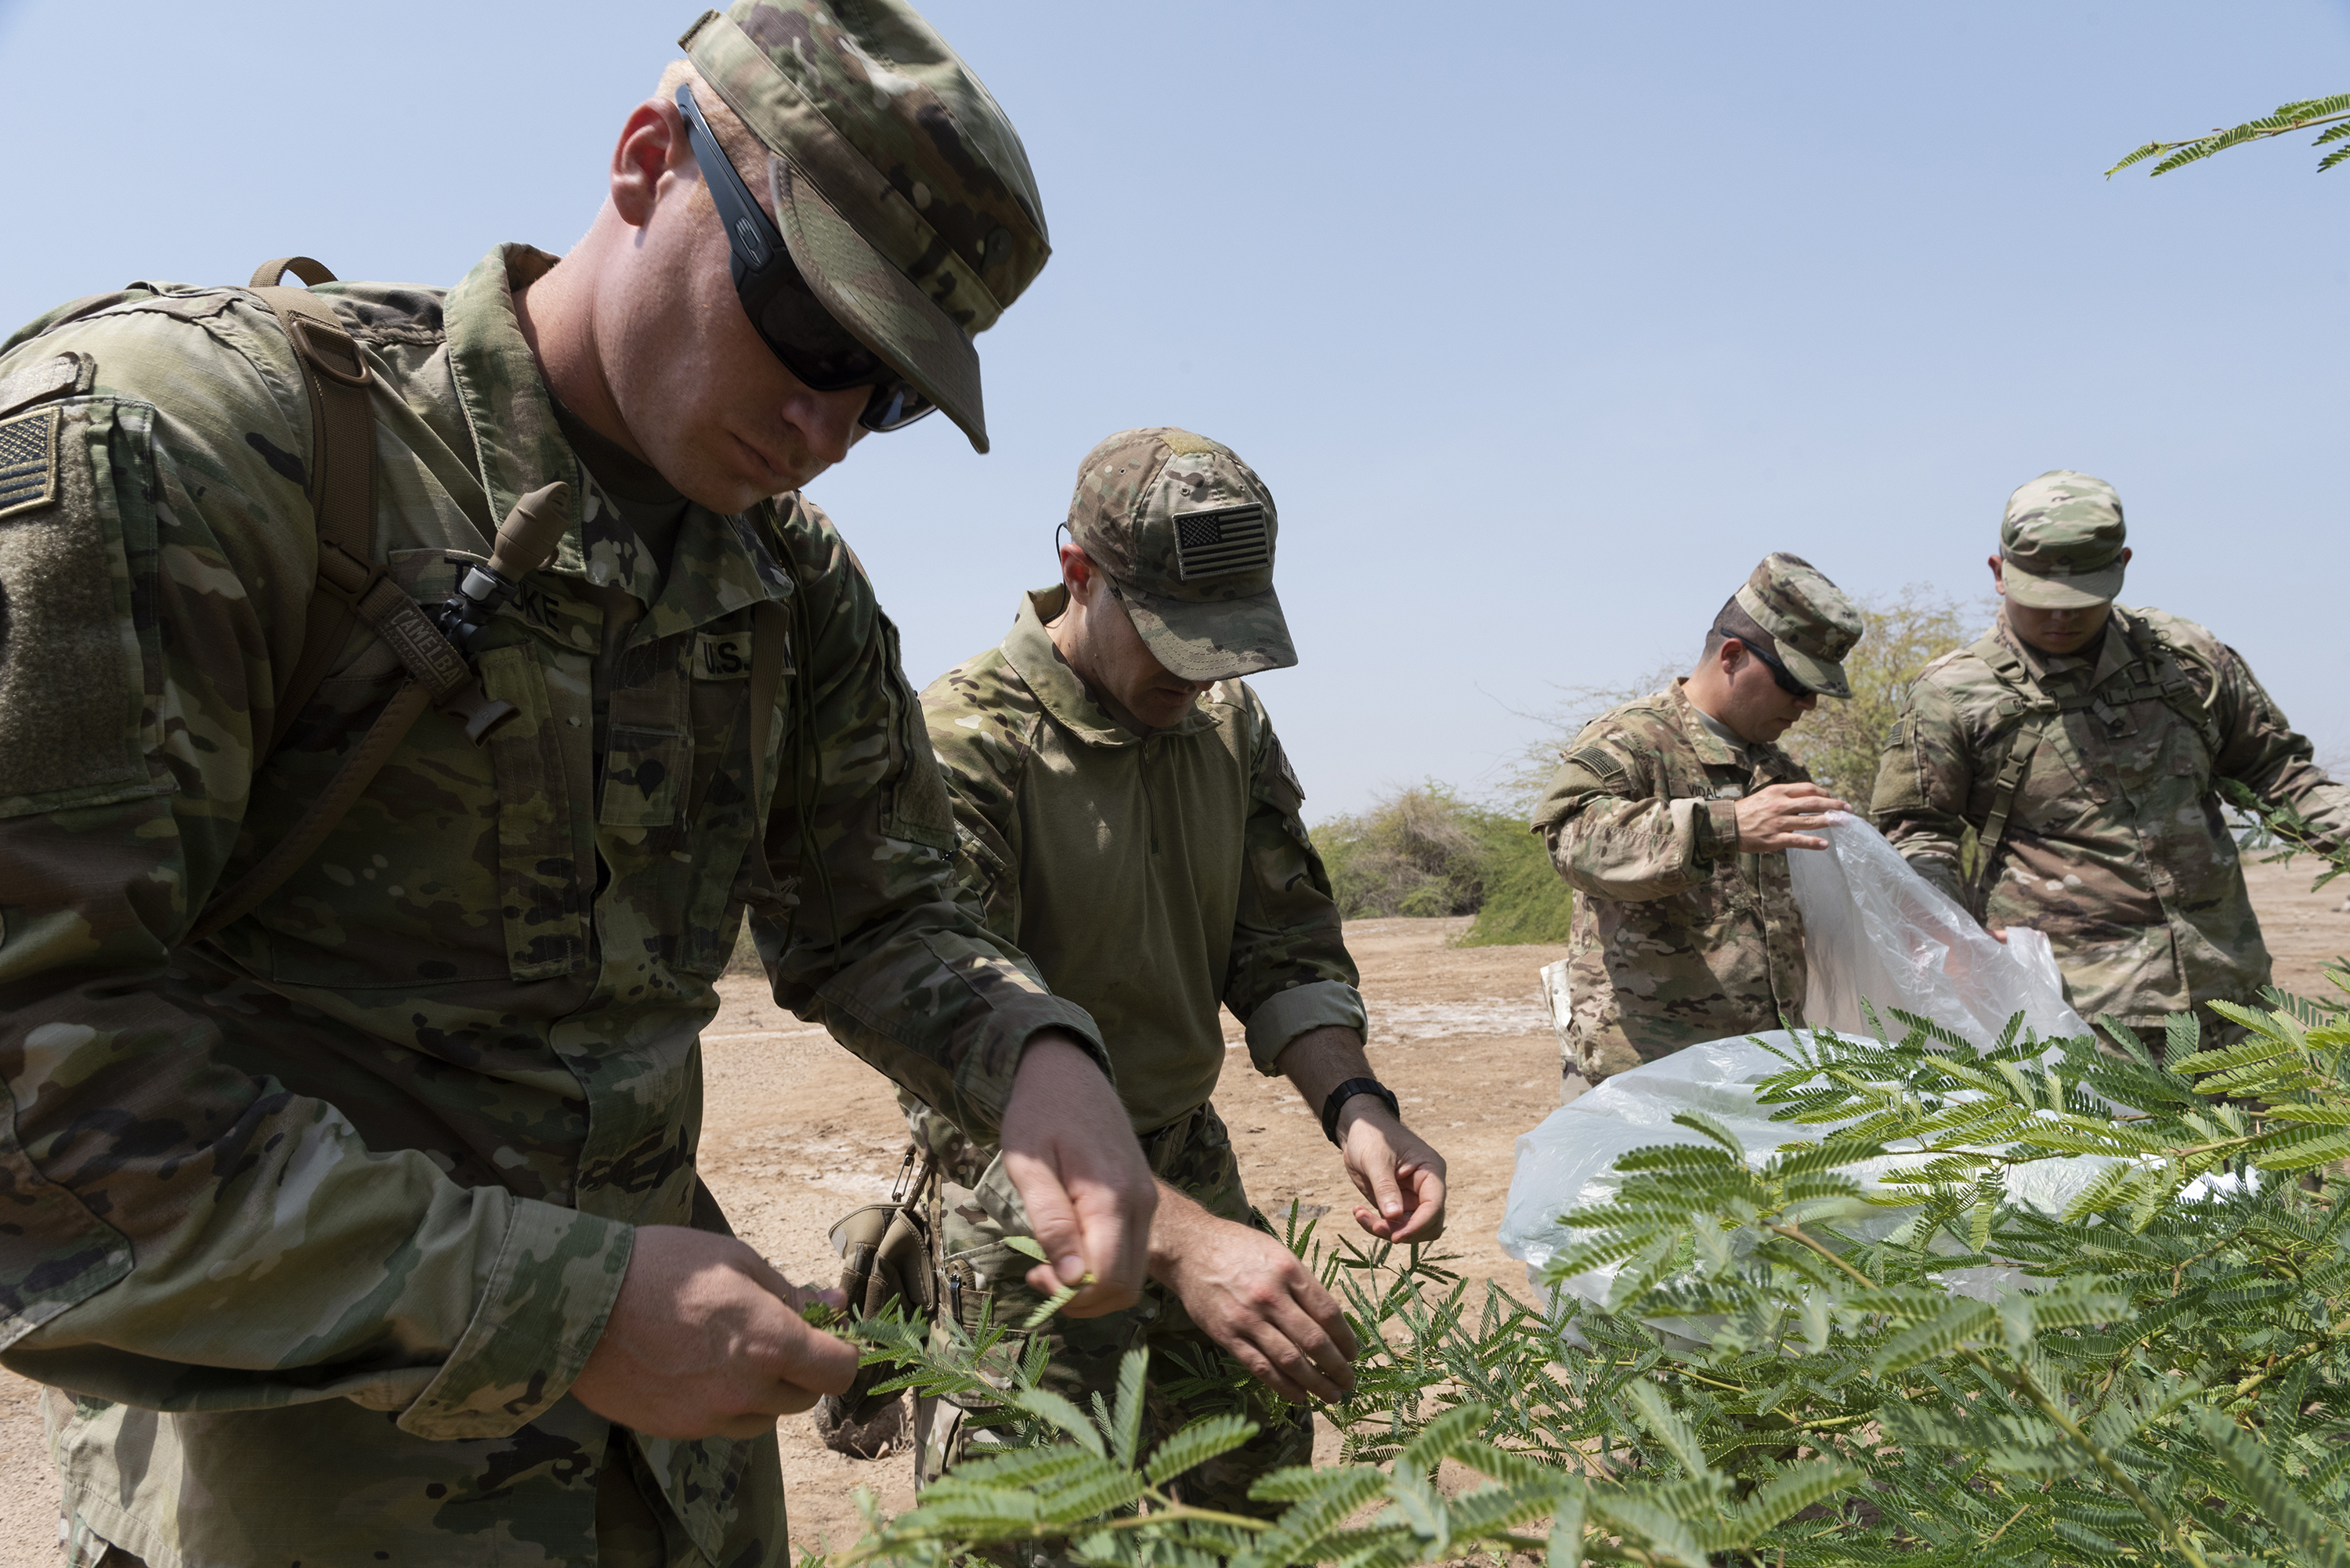 U.S. Soldiers assigned to Combined Joint Task Force Horn of Africa collect leaves during survival skills training on Camp Lemonnier, Djibouti, Oct. 13, 2018. The service members placed the leaves in a plastic bag and exposed the bag to the sun, which allowed condensation to gather and enabled them to create an alternative water source in an austere environment. (U.S. Air National Guard photo by Master Sgt. Sarah Mattison)